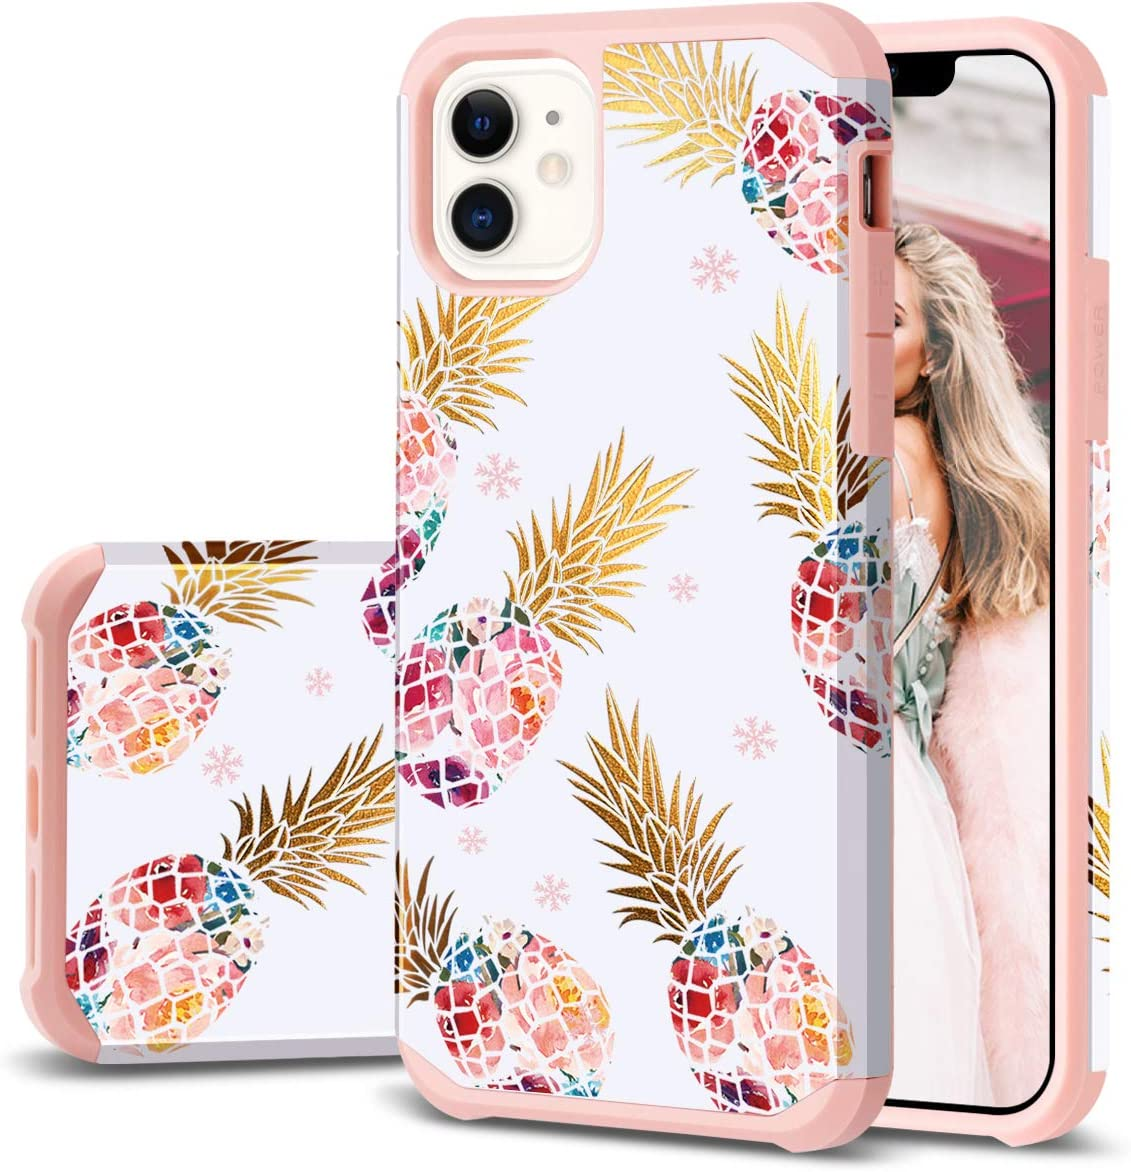 iPhone 11 Case, iPhone 11 Case Pineapple, Fingic Slim Floral Pineapple Case Hard PC Soft Rubber Anti-Scratch Shockproof Protective Skin Cover for iPhone 11 6.1 Inch (2019), Floral Pineapple/Rose Gold